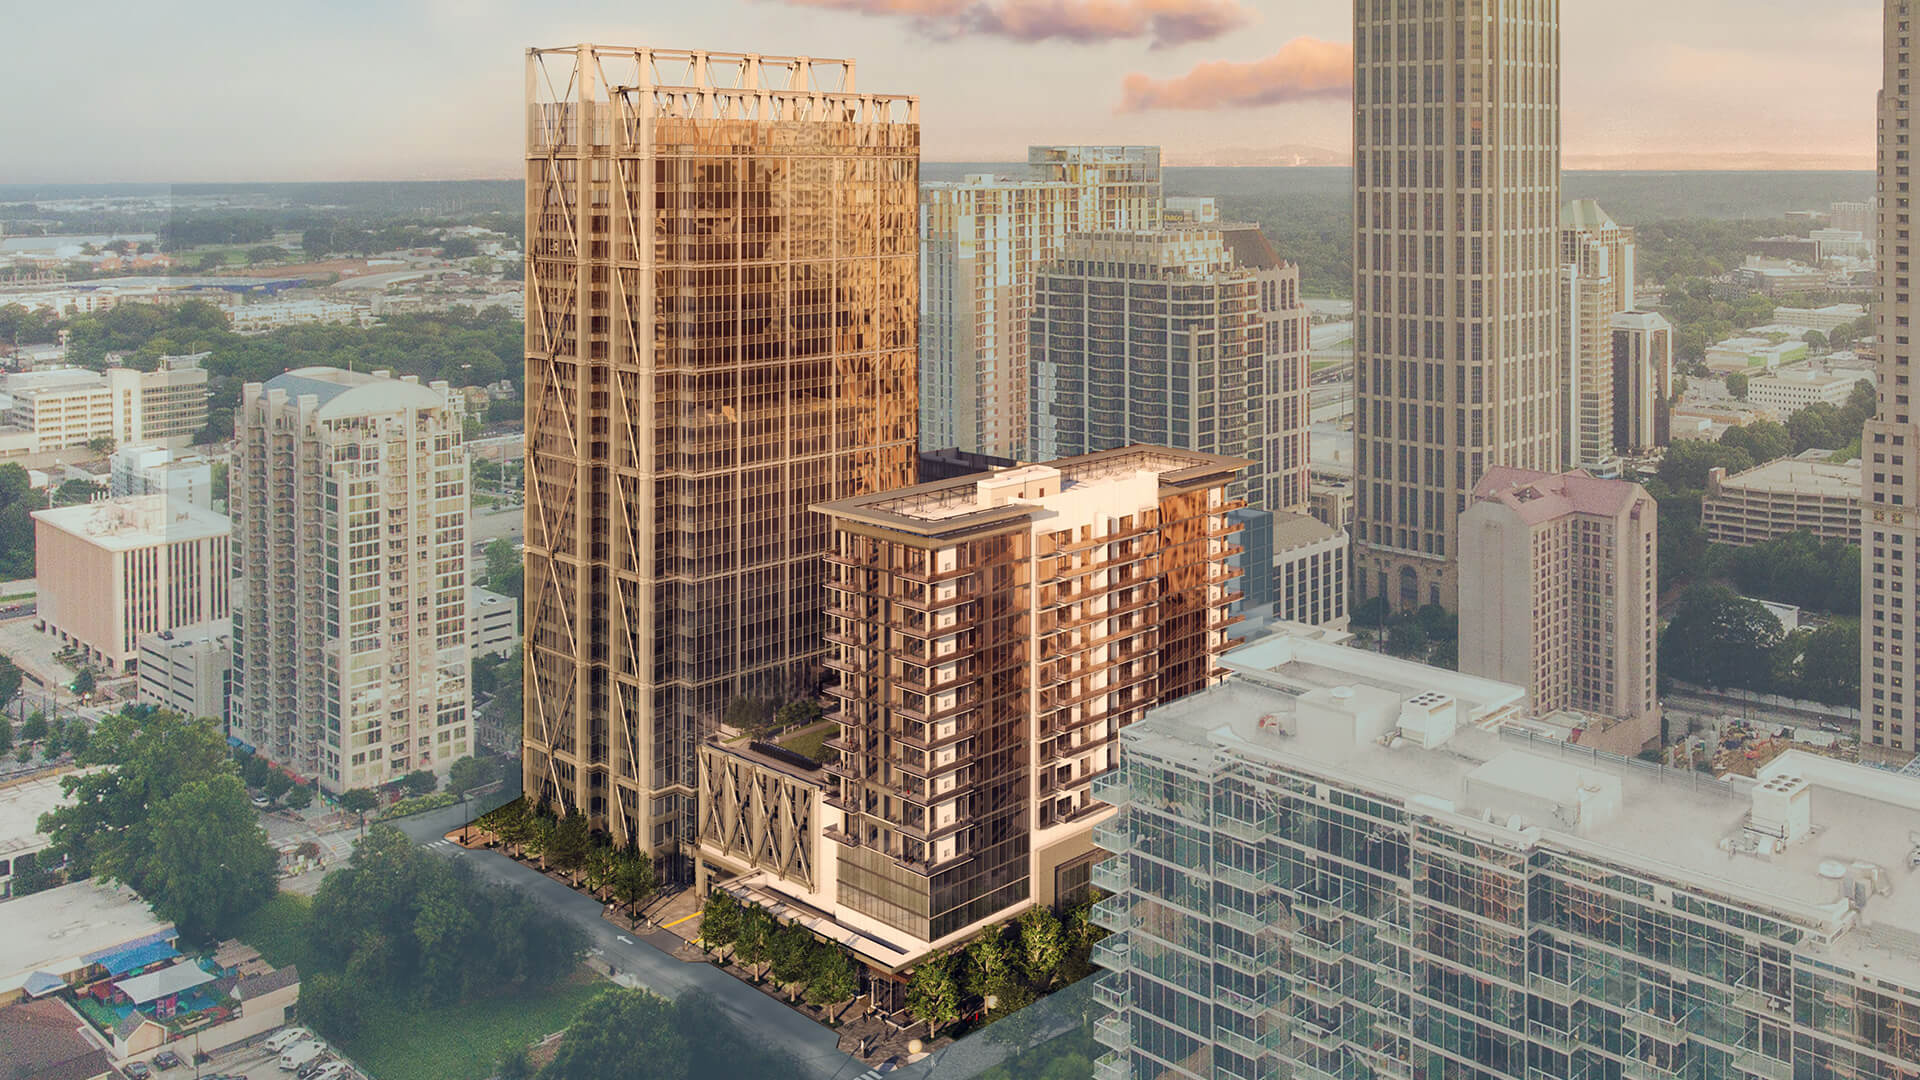 Residents can buy a new luxury Midtown condo for at least $500K